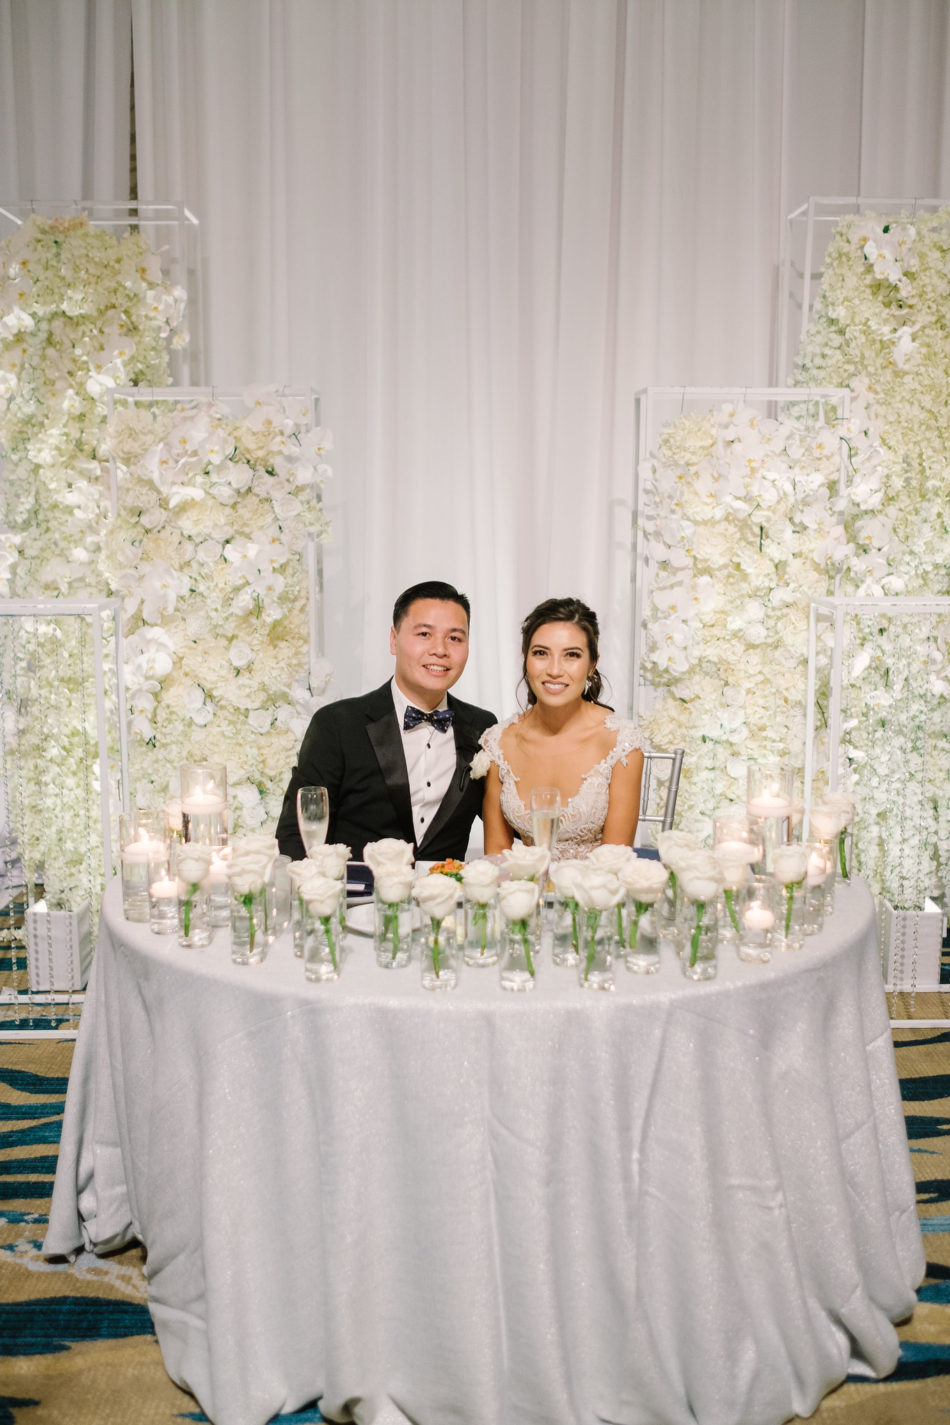 sweetheart table, bride and groom, sweetheart table florals, magnificent all-white wedding, floral design, florist, wedding florist, wedding flowers, orange county weddings, orange county wedding florist, orange county florist, orange county floral design, flowers by cina